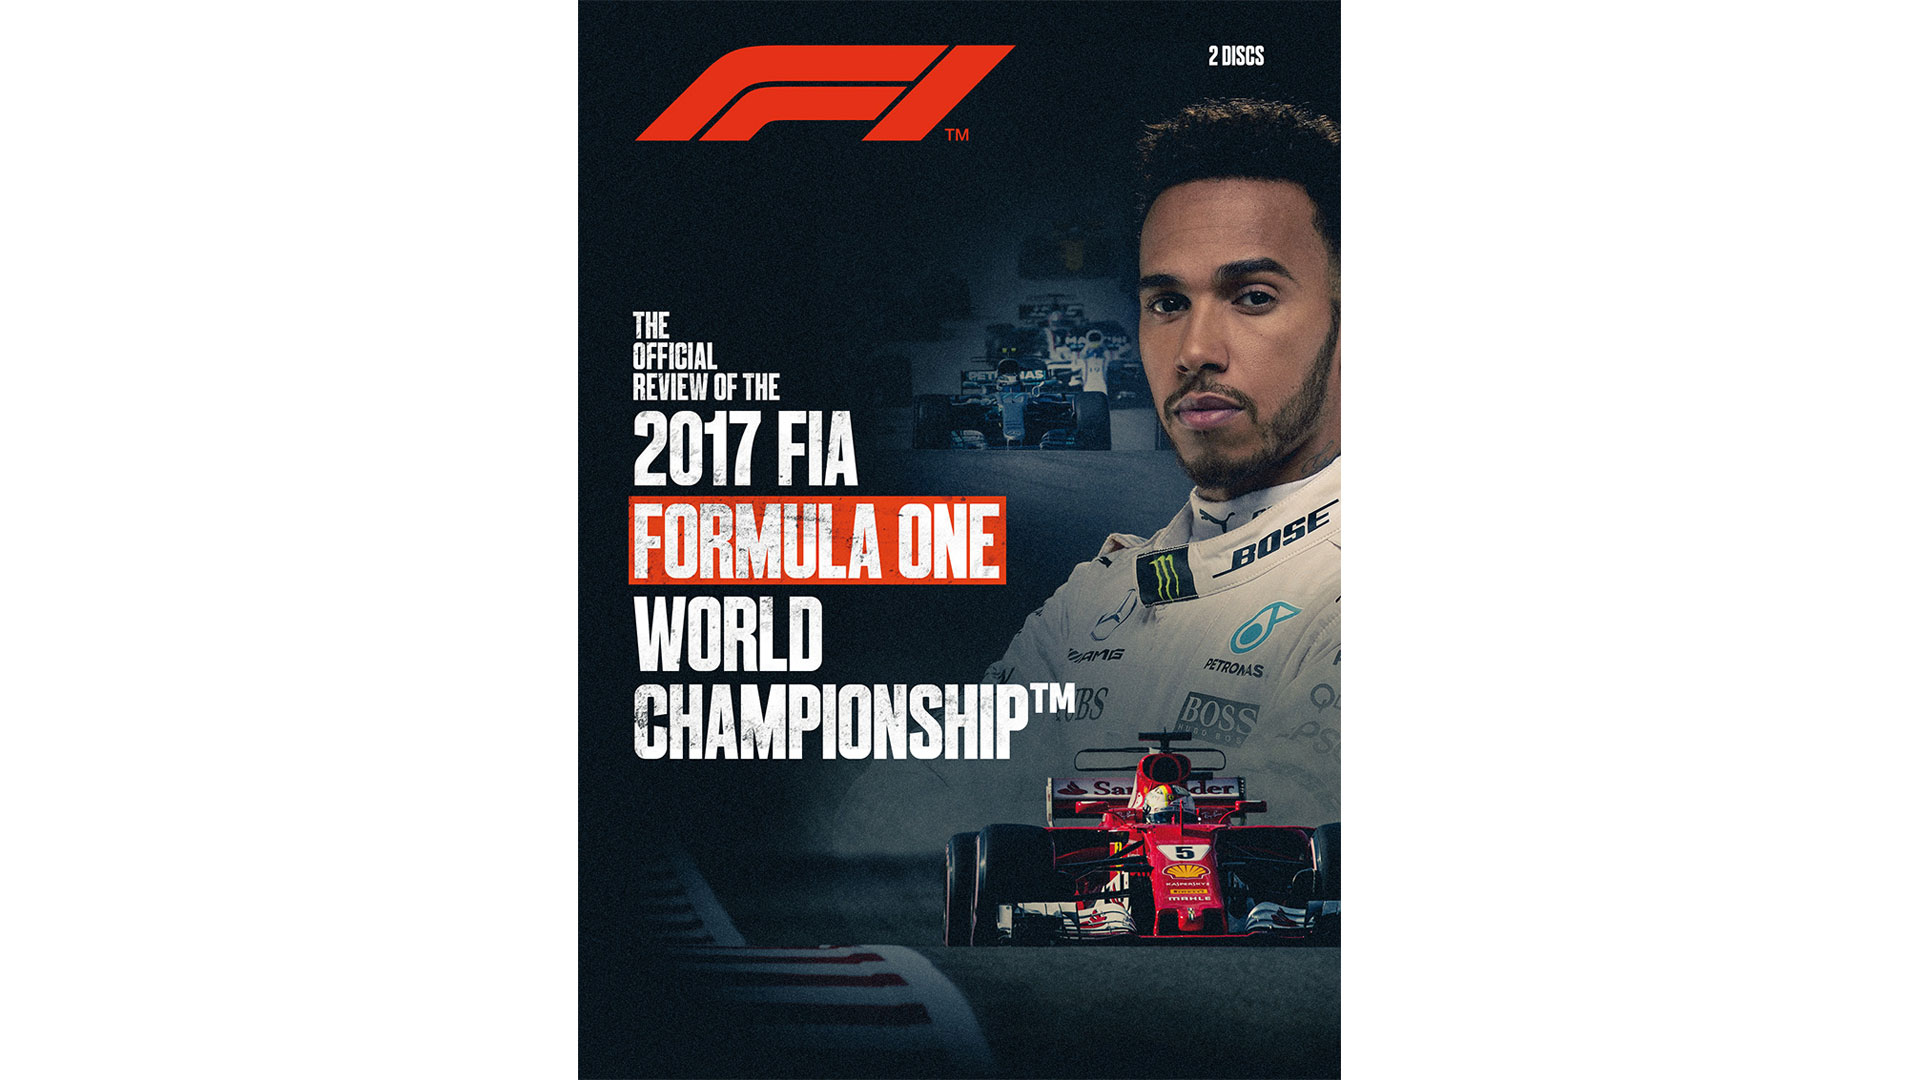 Official 2017 F1 season review video